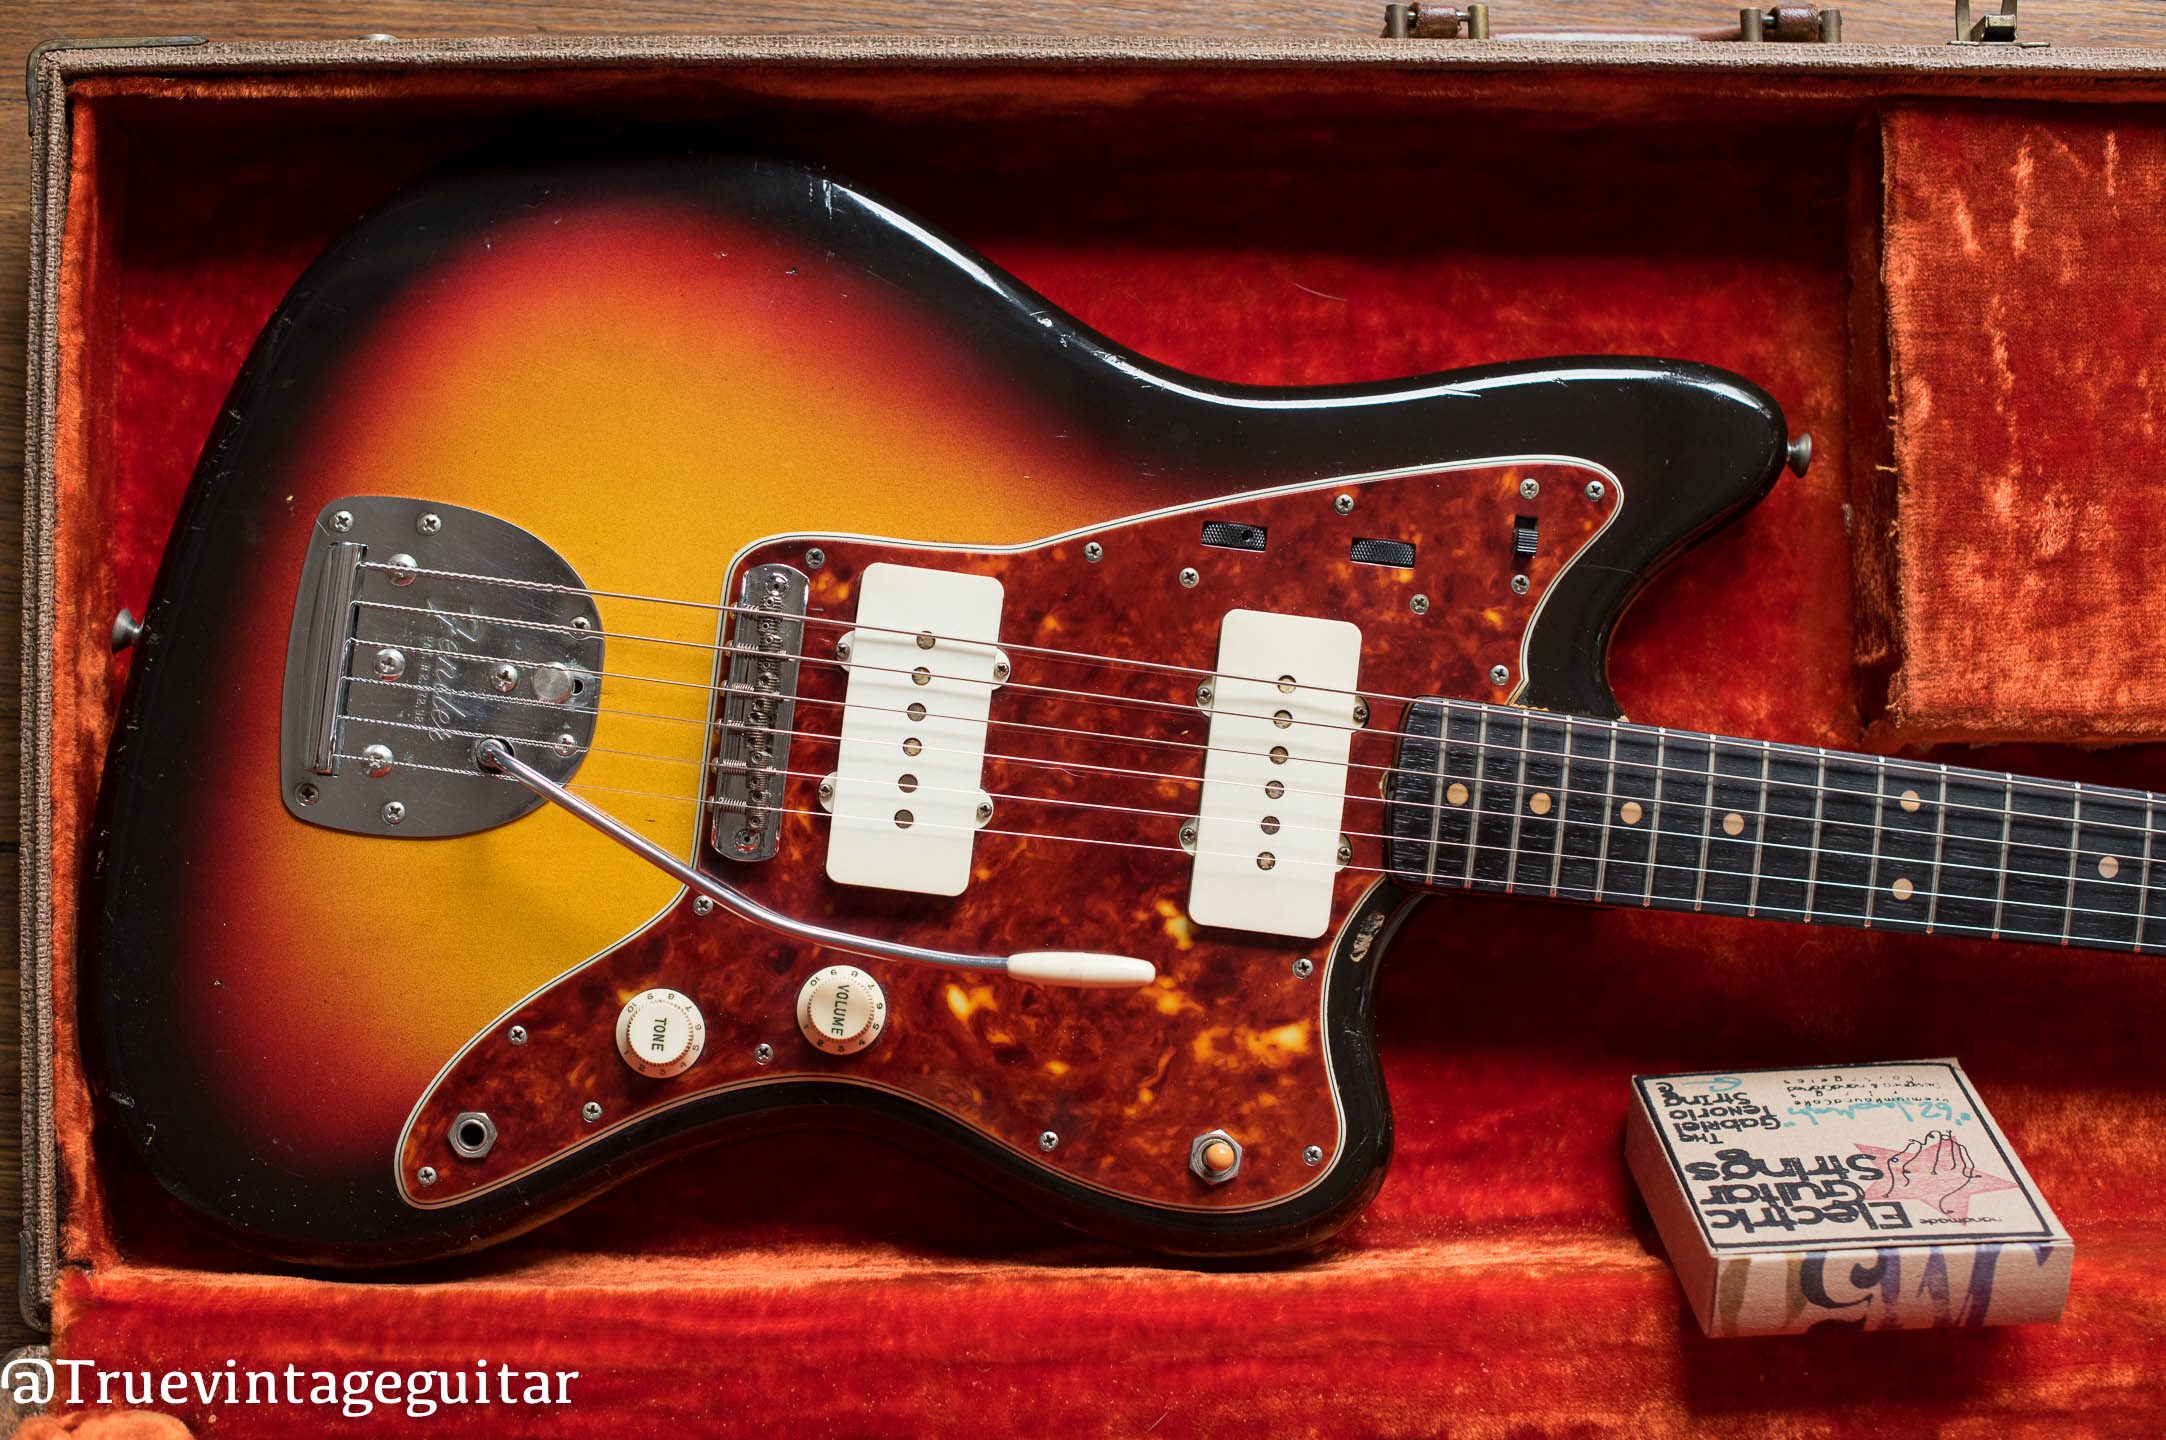 Vintage 1962 Fender Jazzmaster electric guitar Sunburst